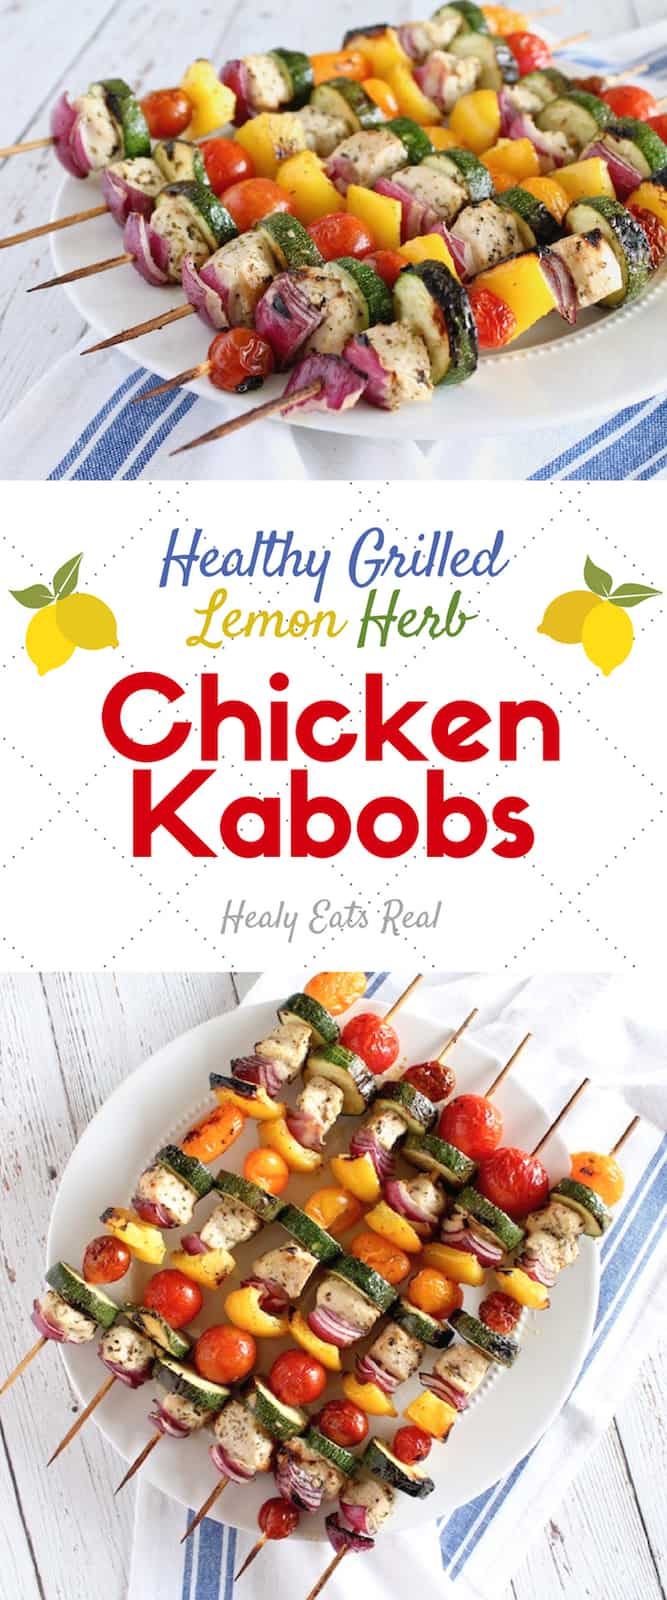 Lemon Herb Chicken Kabobs (Oven or Grill)